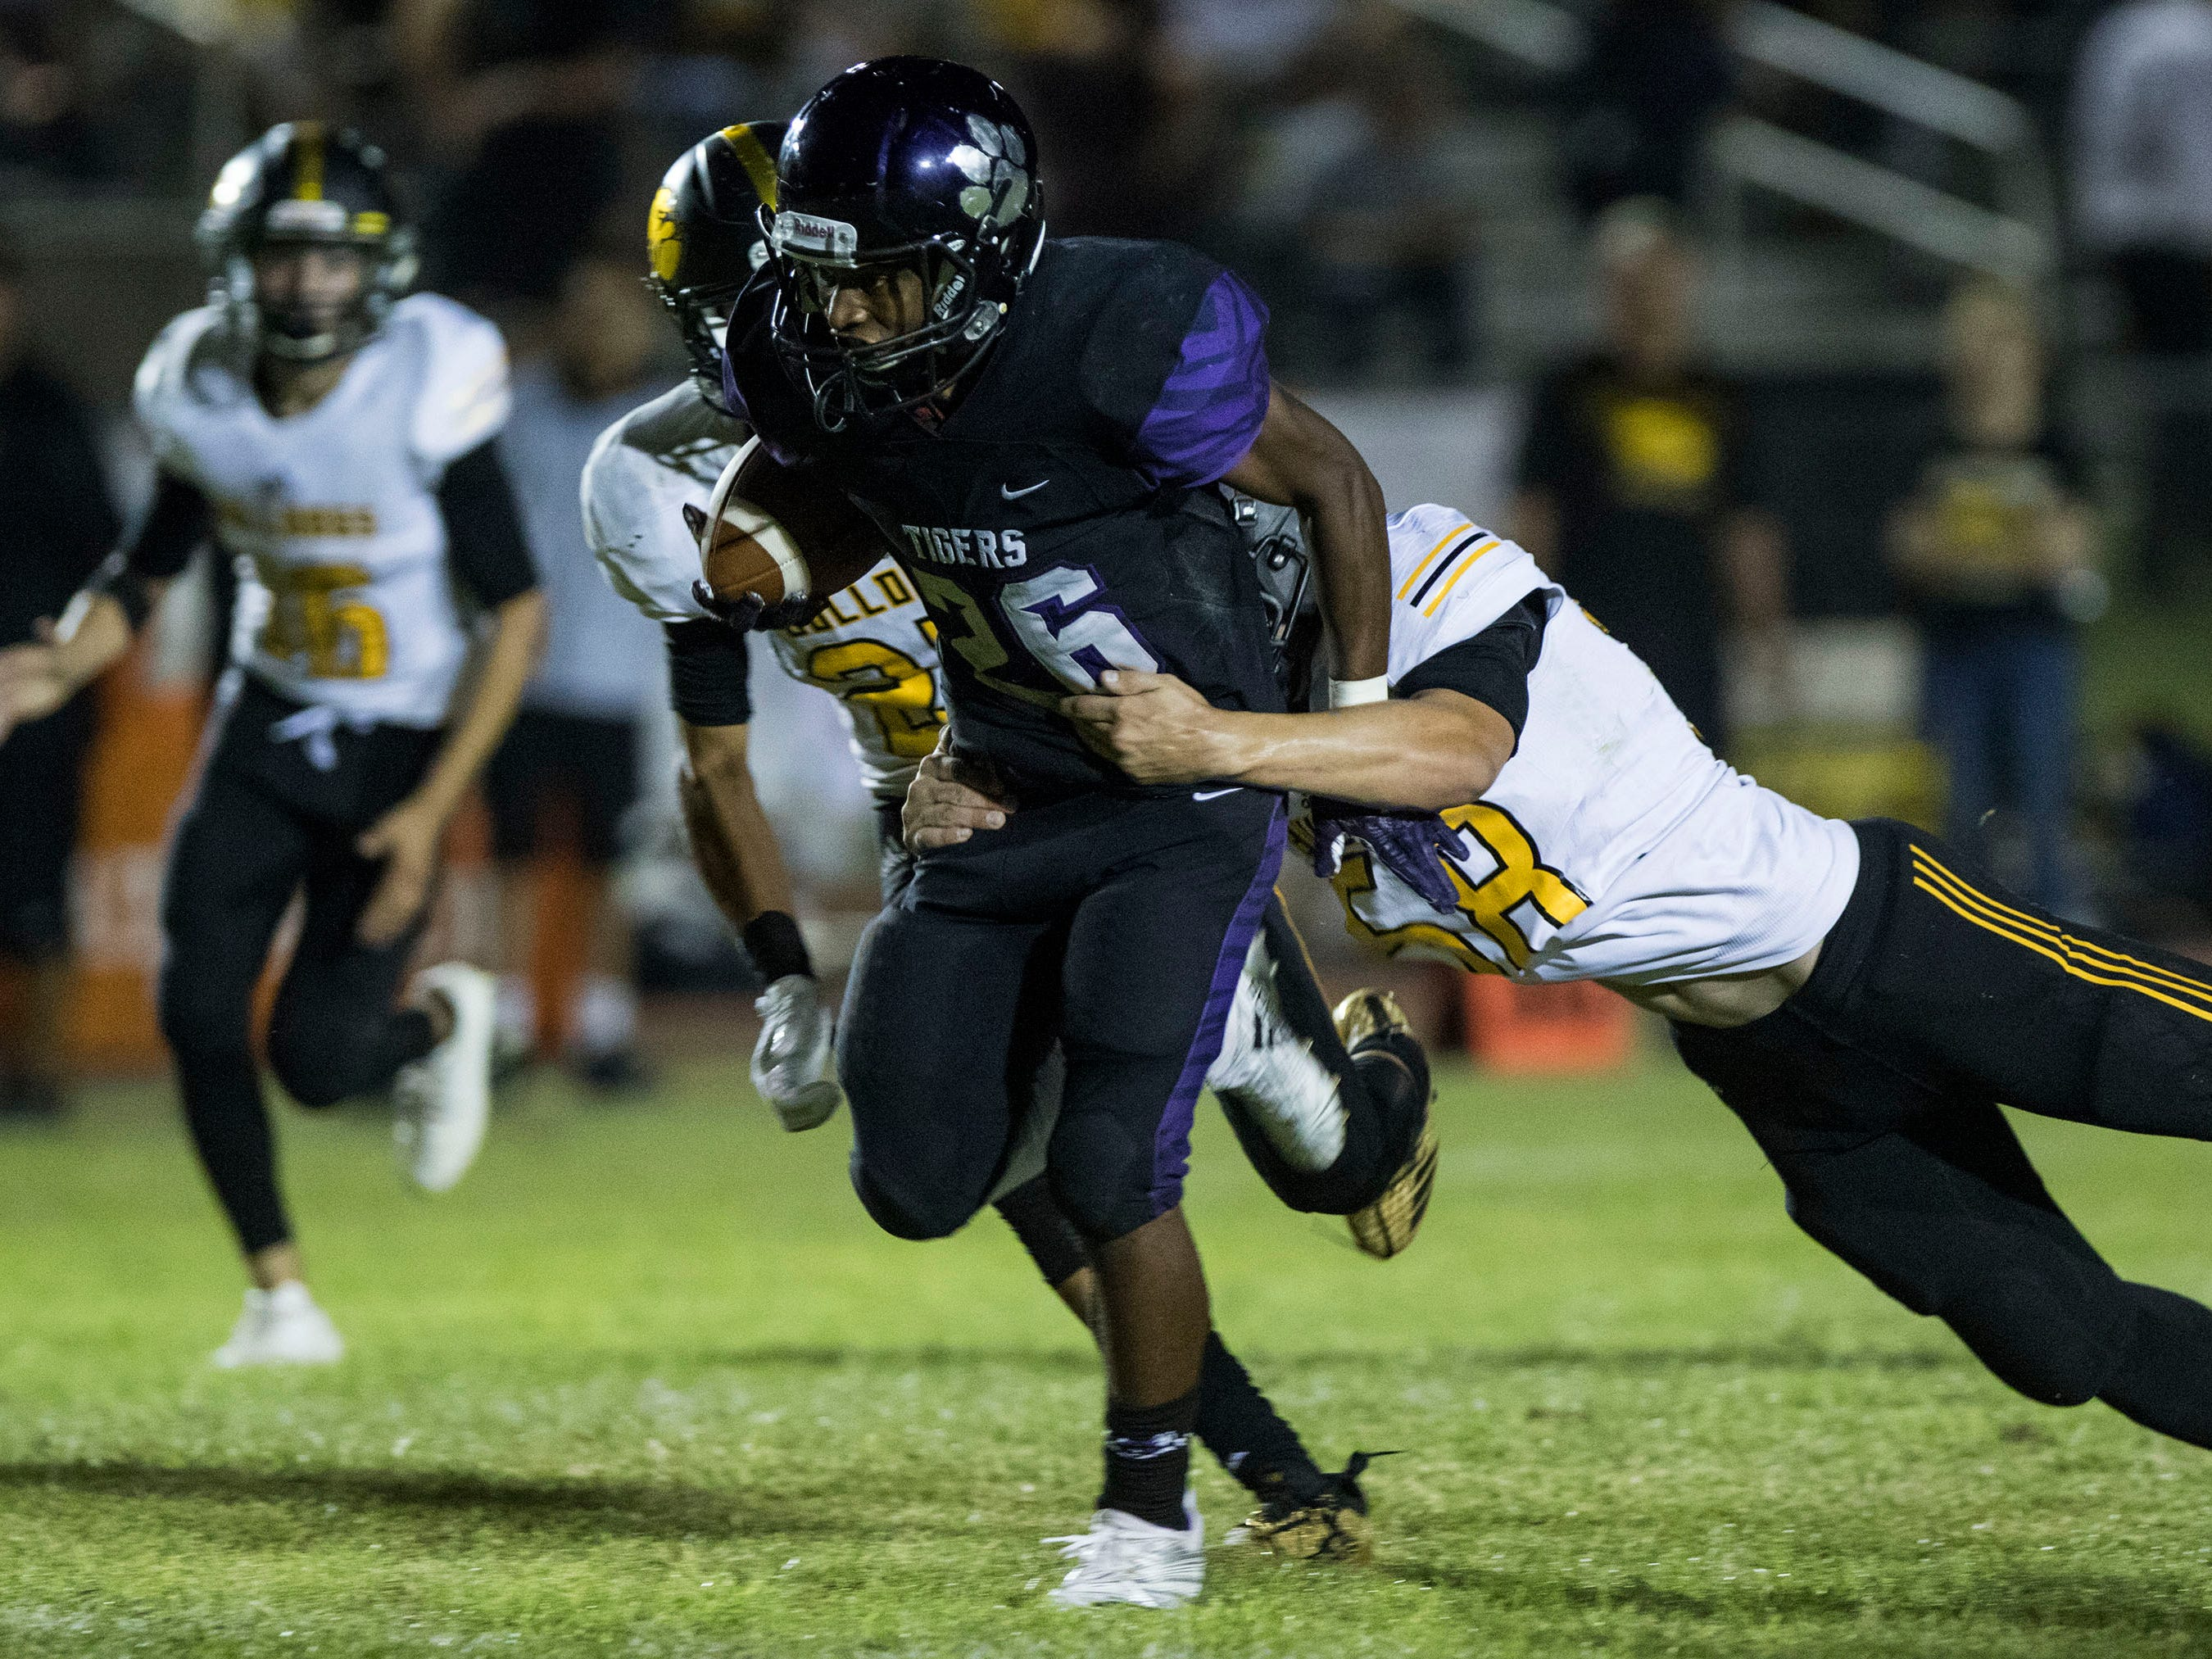 Millennium's Isaac Oliver breaks the tackle of a Goldwater player defense during their game in Goodyear Friday, Sept. 28, 2018. #azhsfb